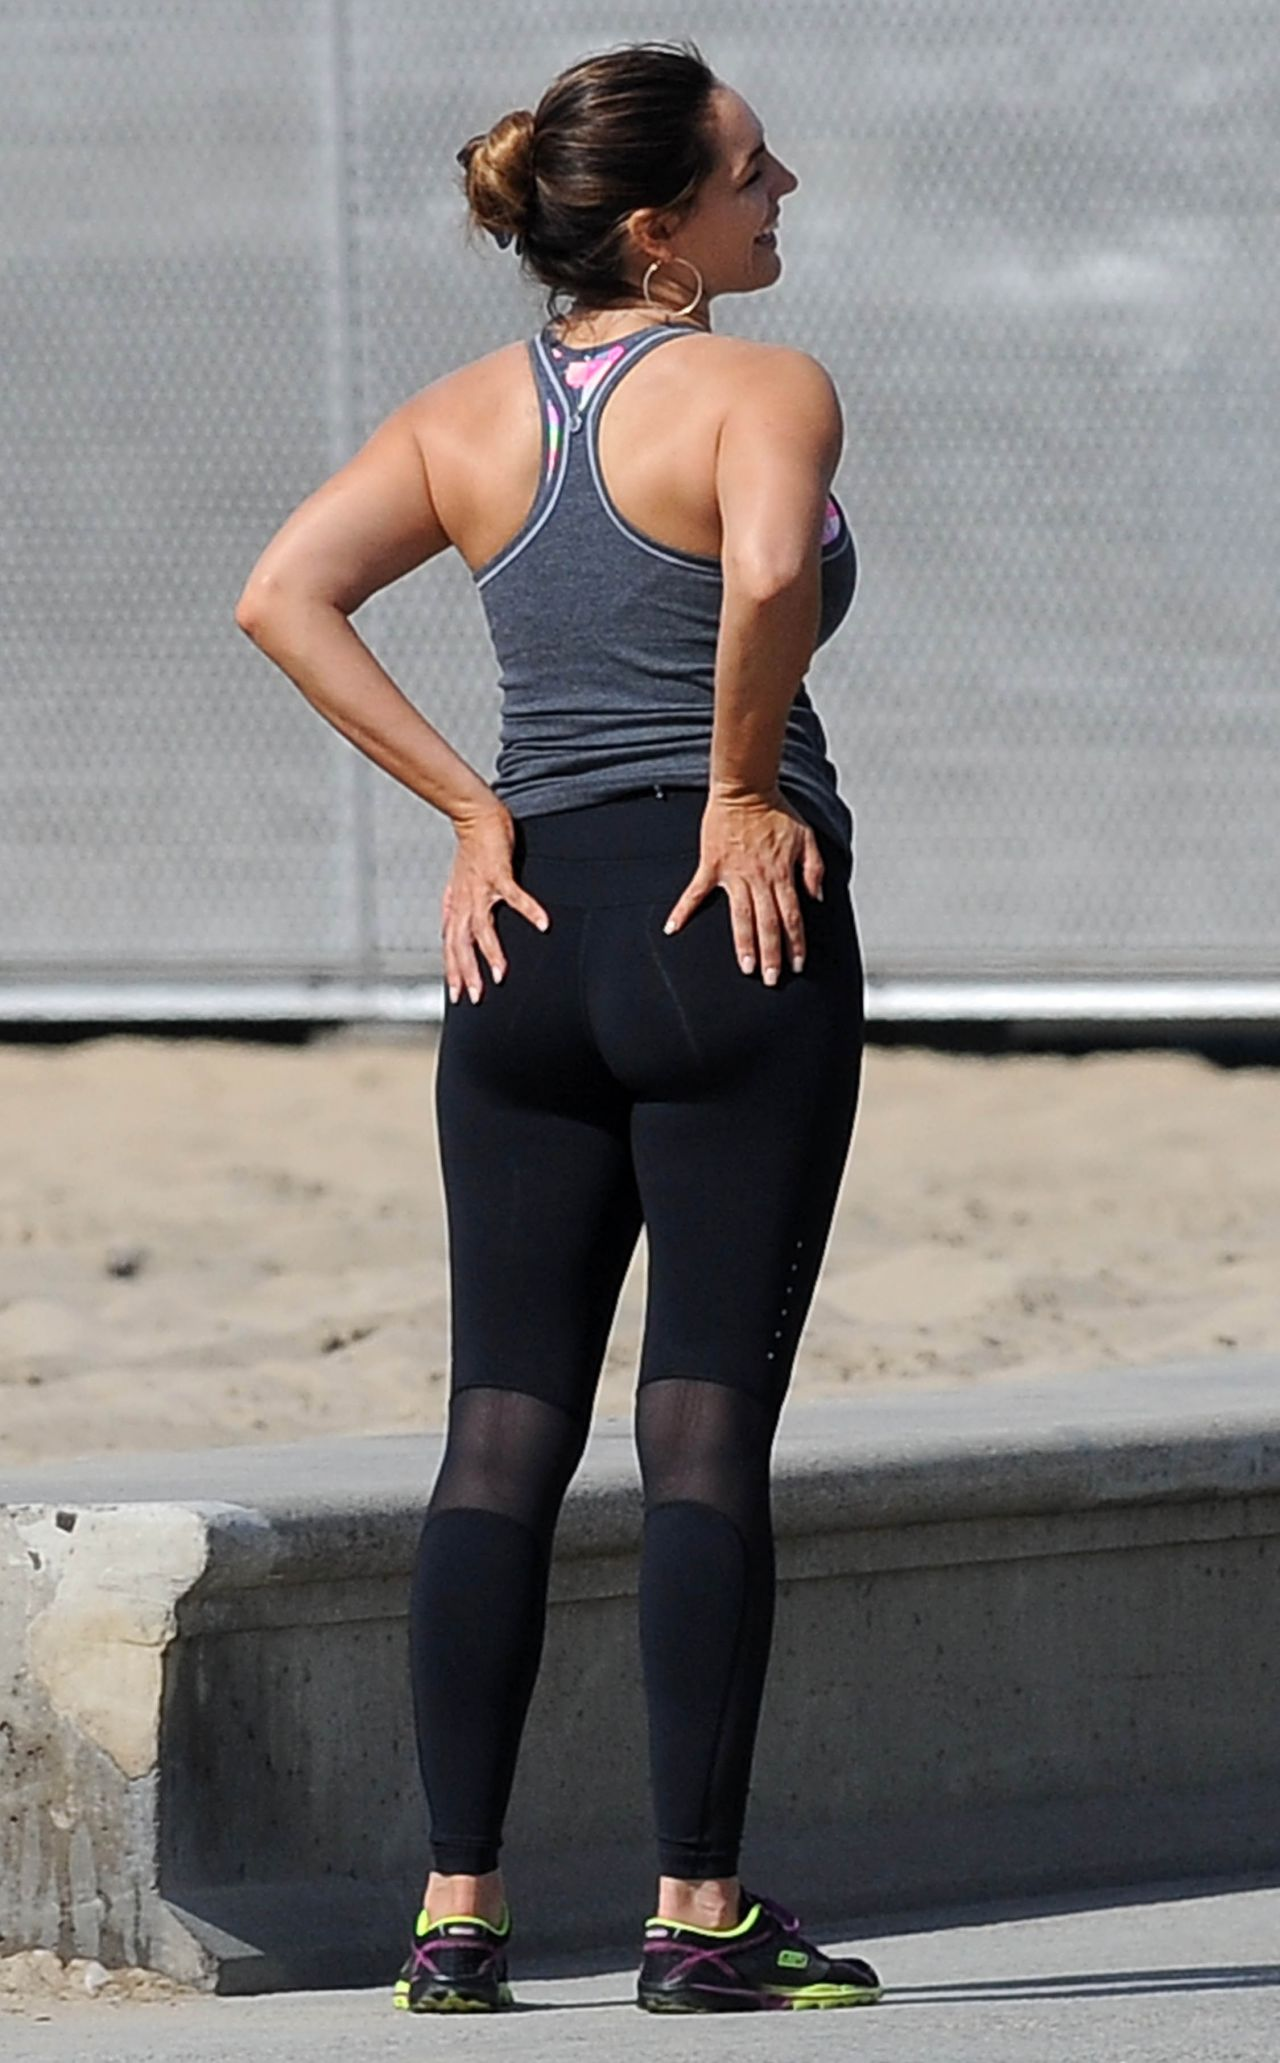 Kelly Brook Booty in Tights - Workout in Los Angeles, Feb